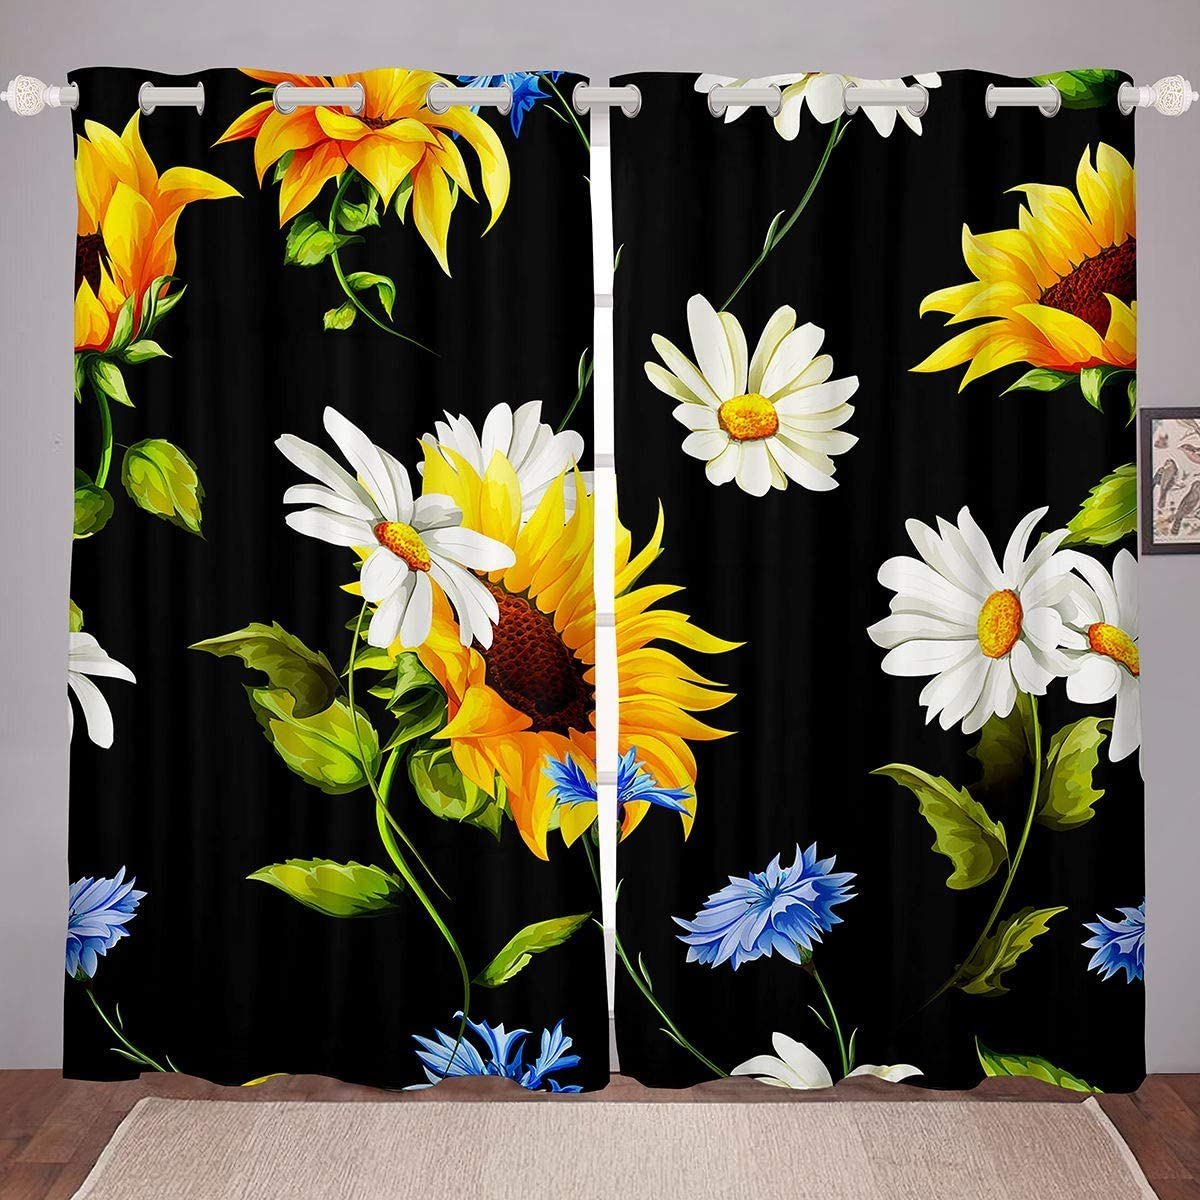 Floral Window Sunflower Daisy 1 year Mail order cheap warranty Colorful Decor Flo Curtains